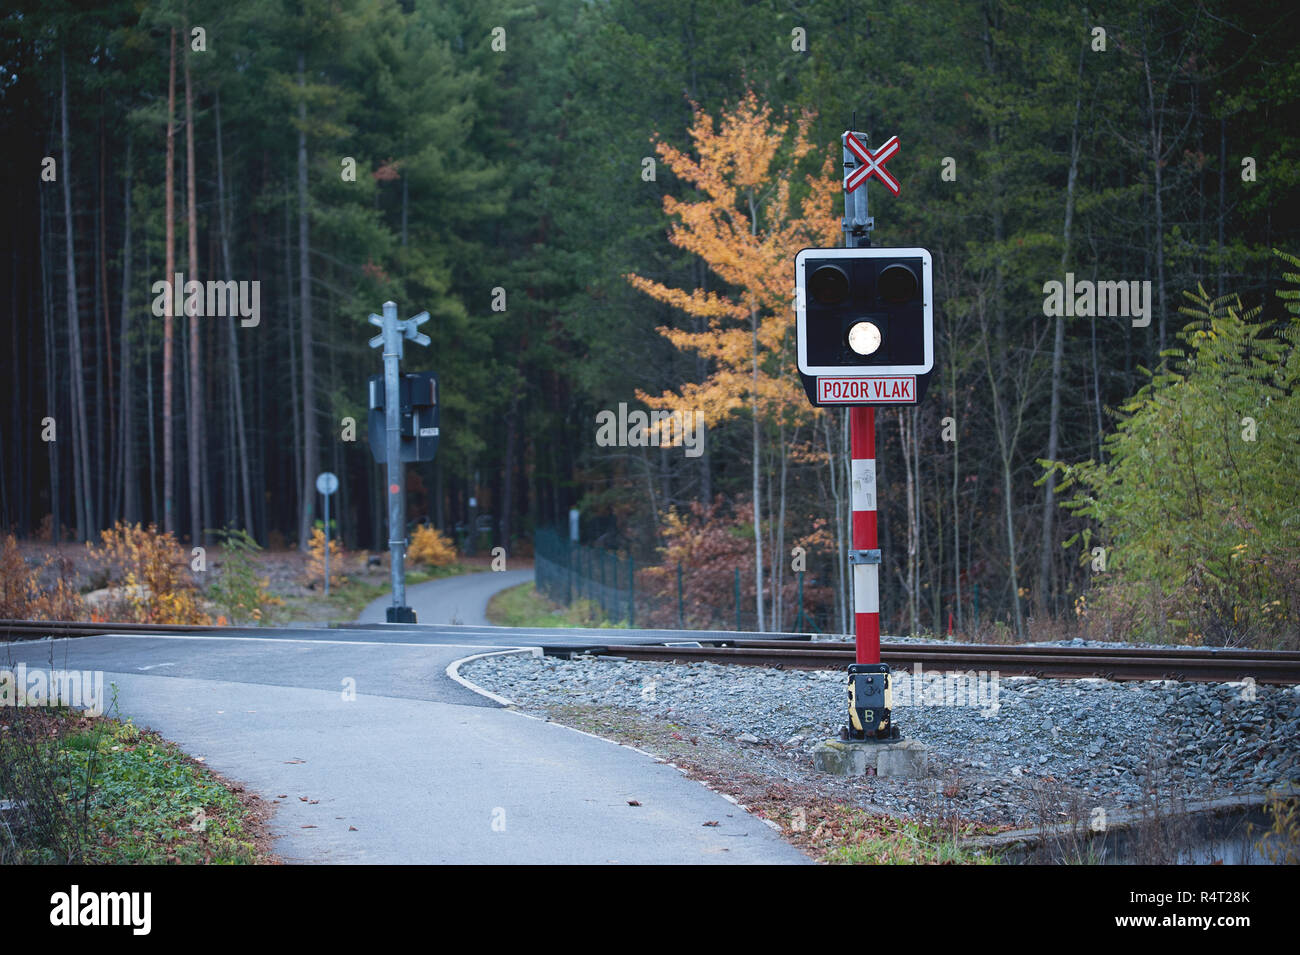 Unprotected Rail Crossing in Forest. Czech Sign: Pozor vlak, in English: Attention train. - Stock Image